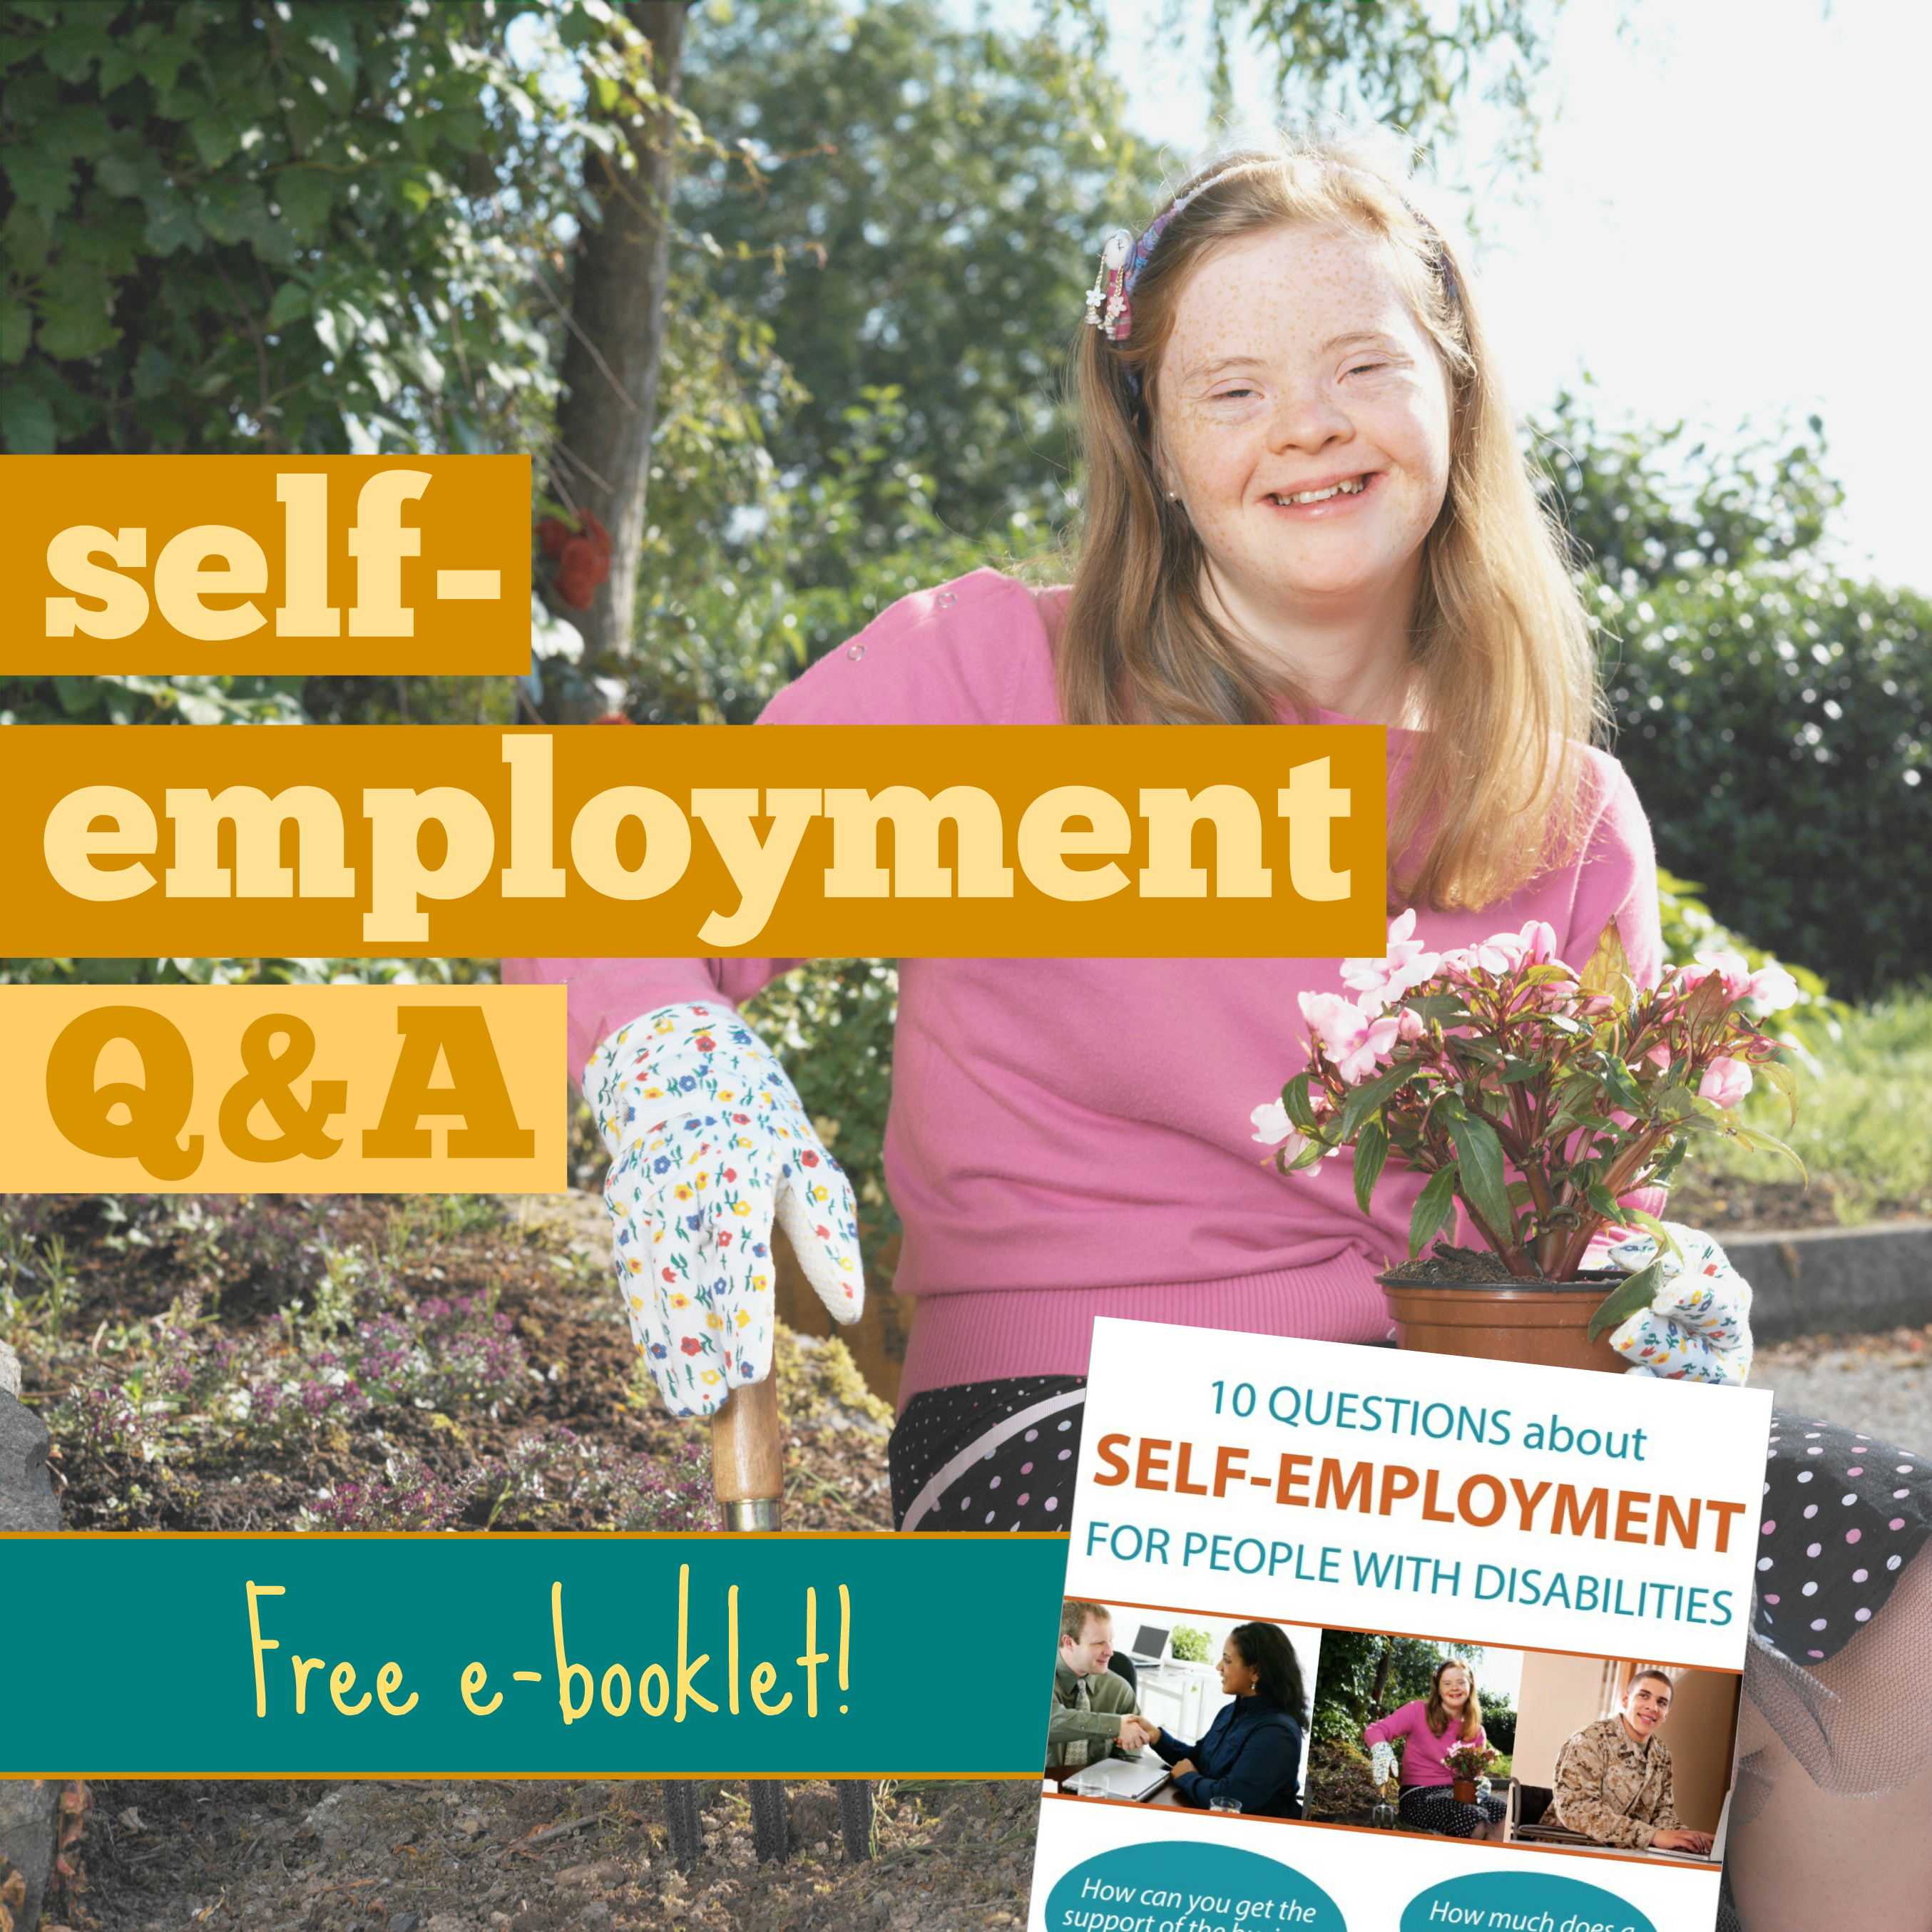 self-employment interview